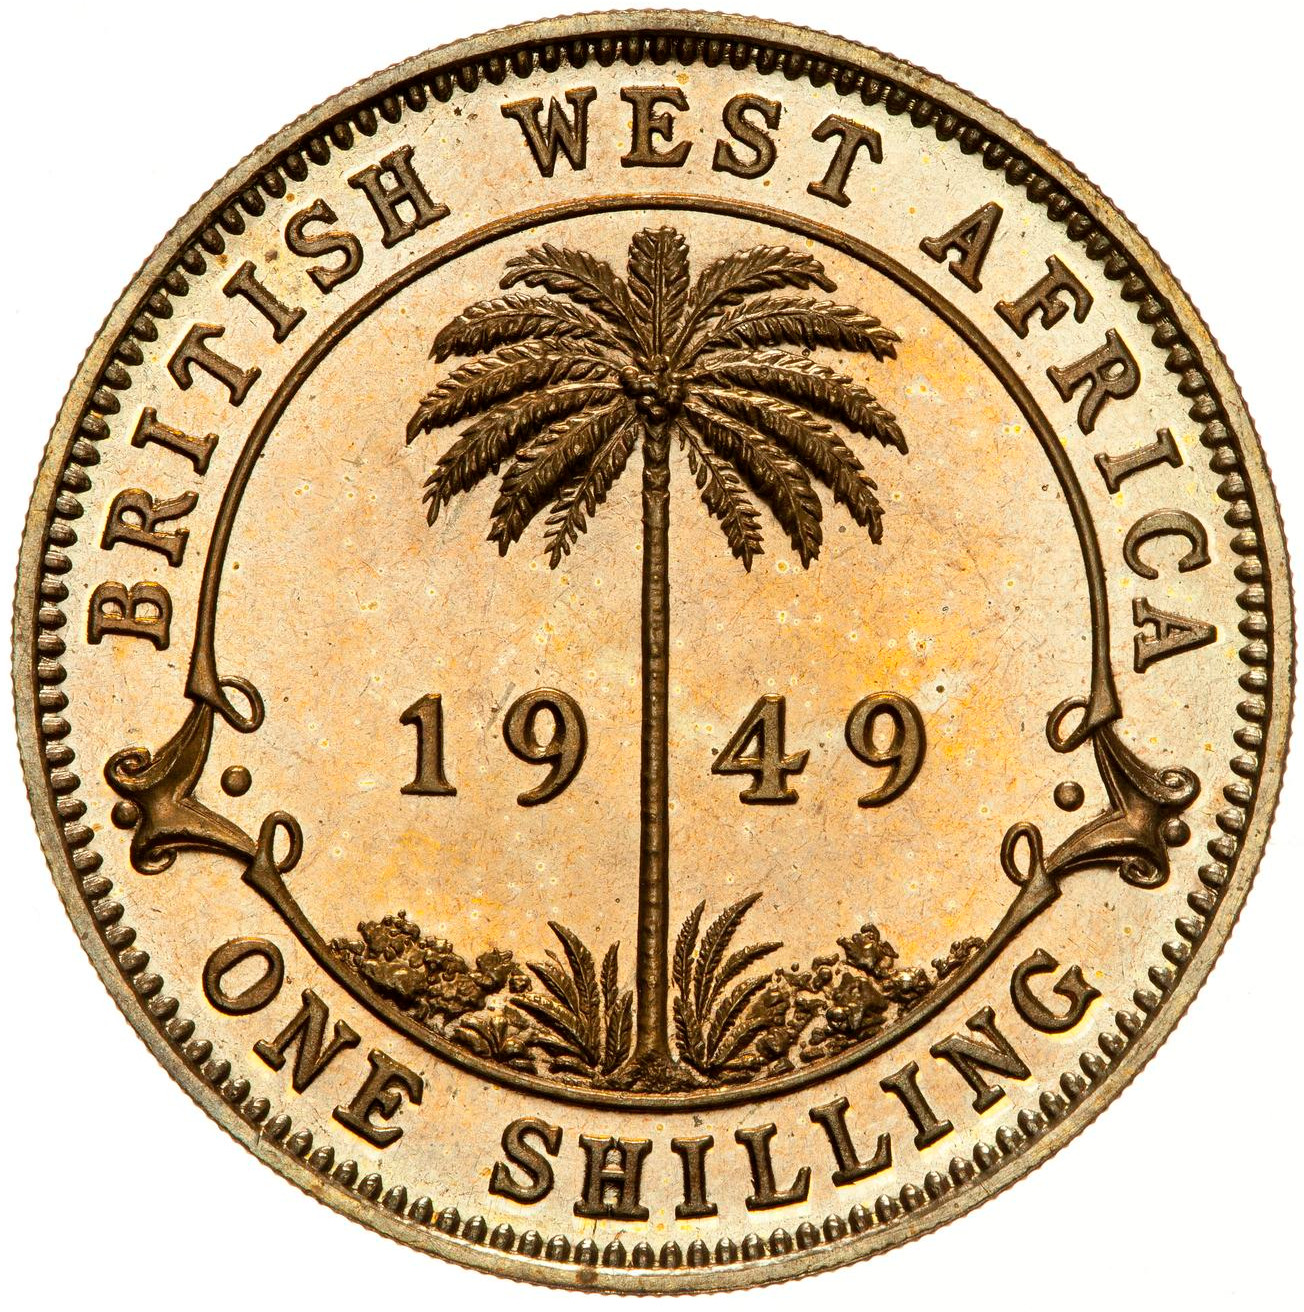 Shilling (Tin Brass, George VI): Photo Proof Coin - 1 Shilling, British West Africa, 1949